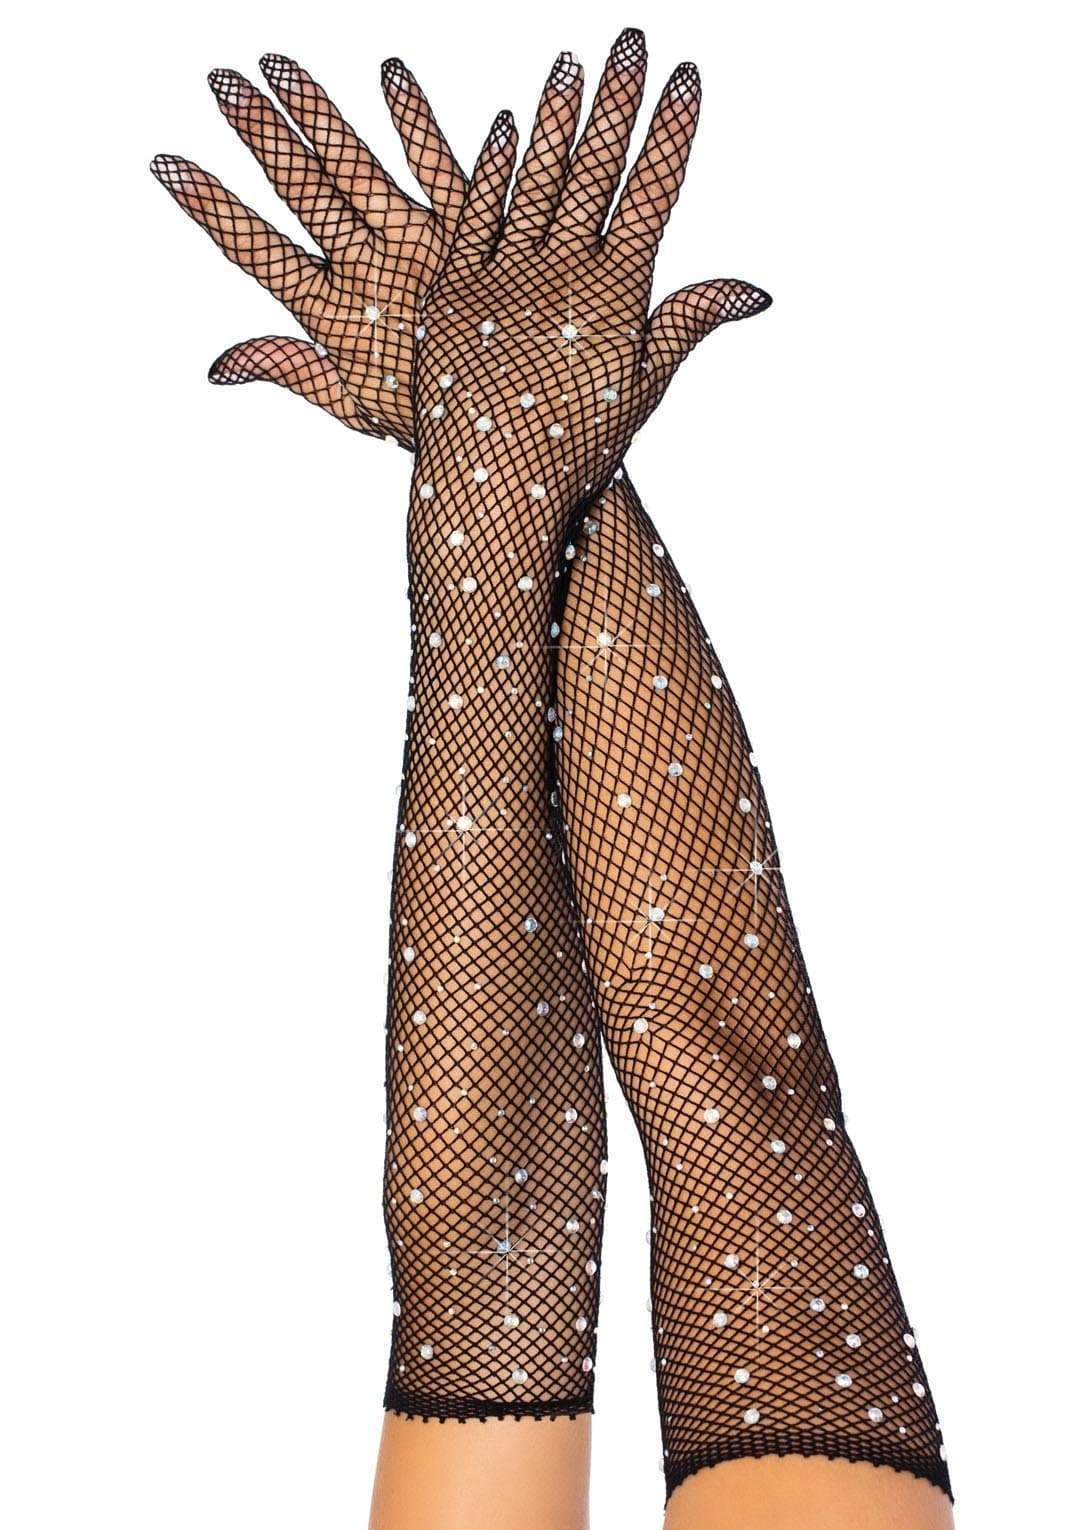 Rhinestone Fishnet Gloves Edmonton